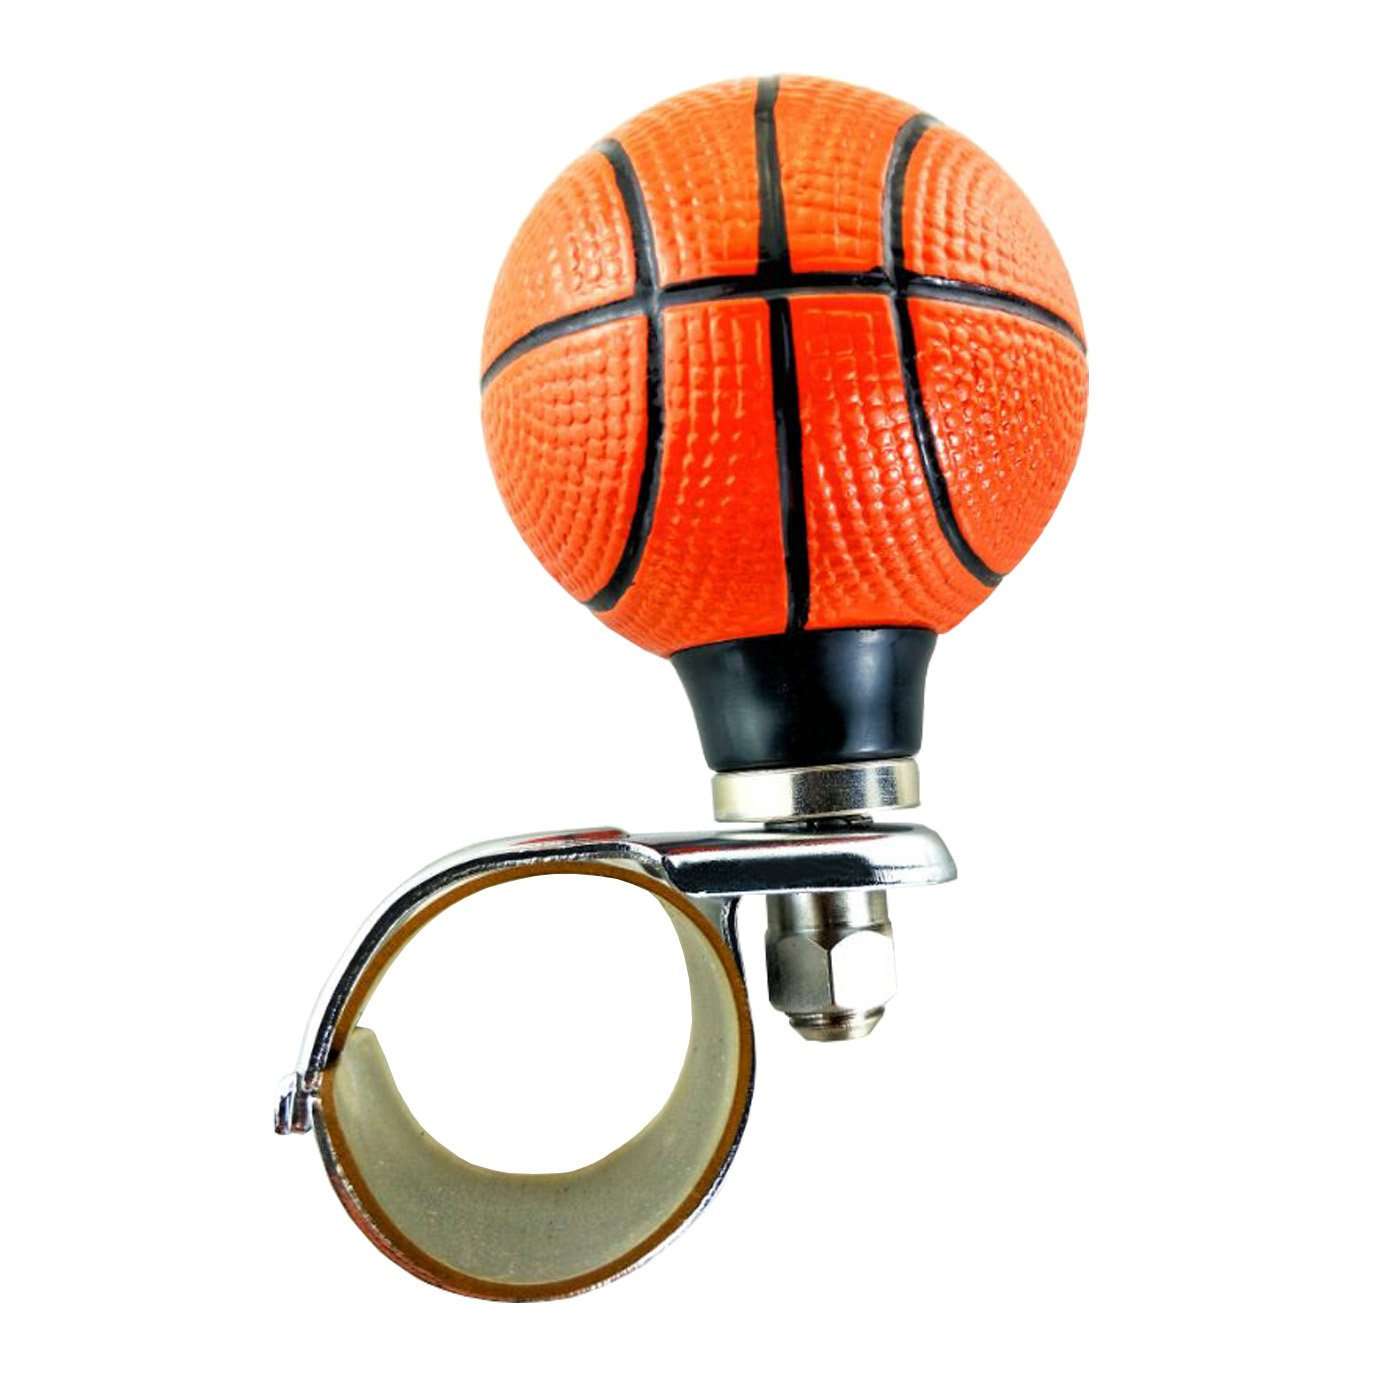 Lunsom Football Steering Wheel Booster Resin Driving Power Handle Knob Control Grip Suicide Spinner Aid Vehicle Turning Helper Fit Most Car